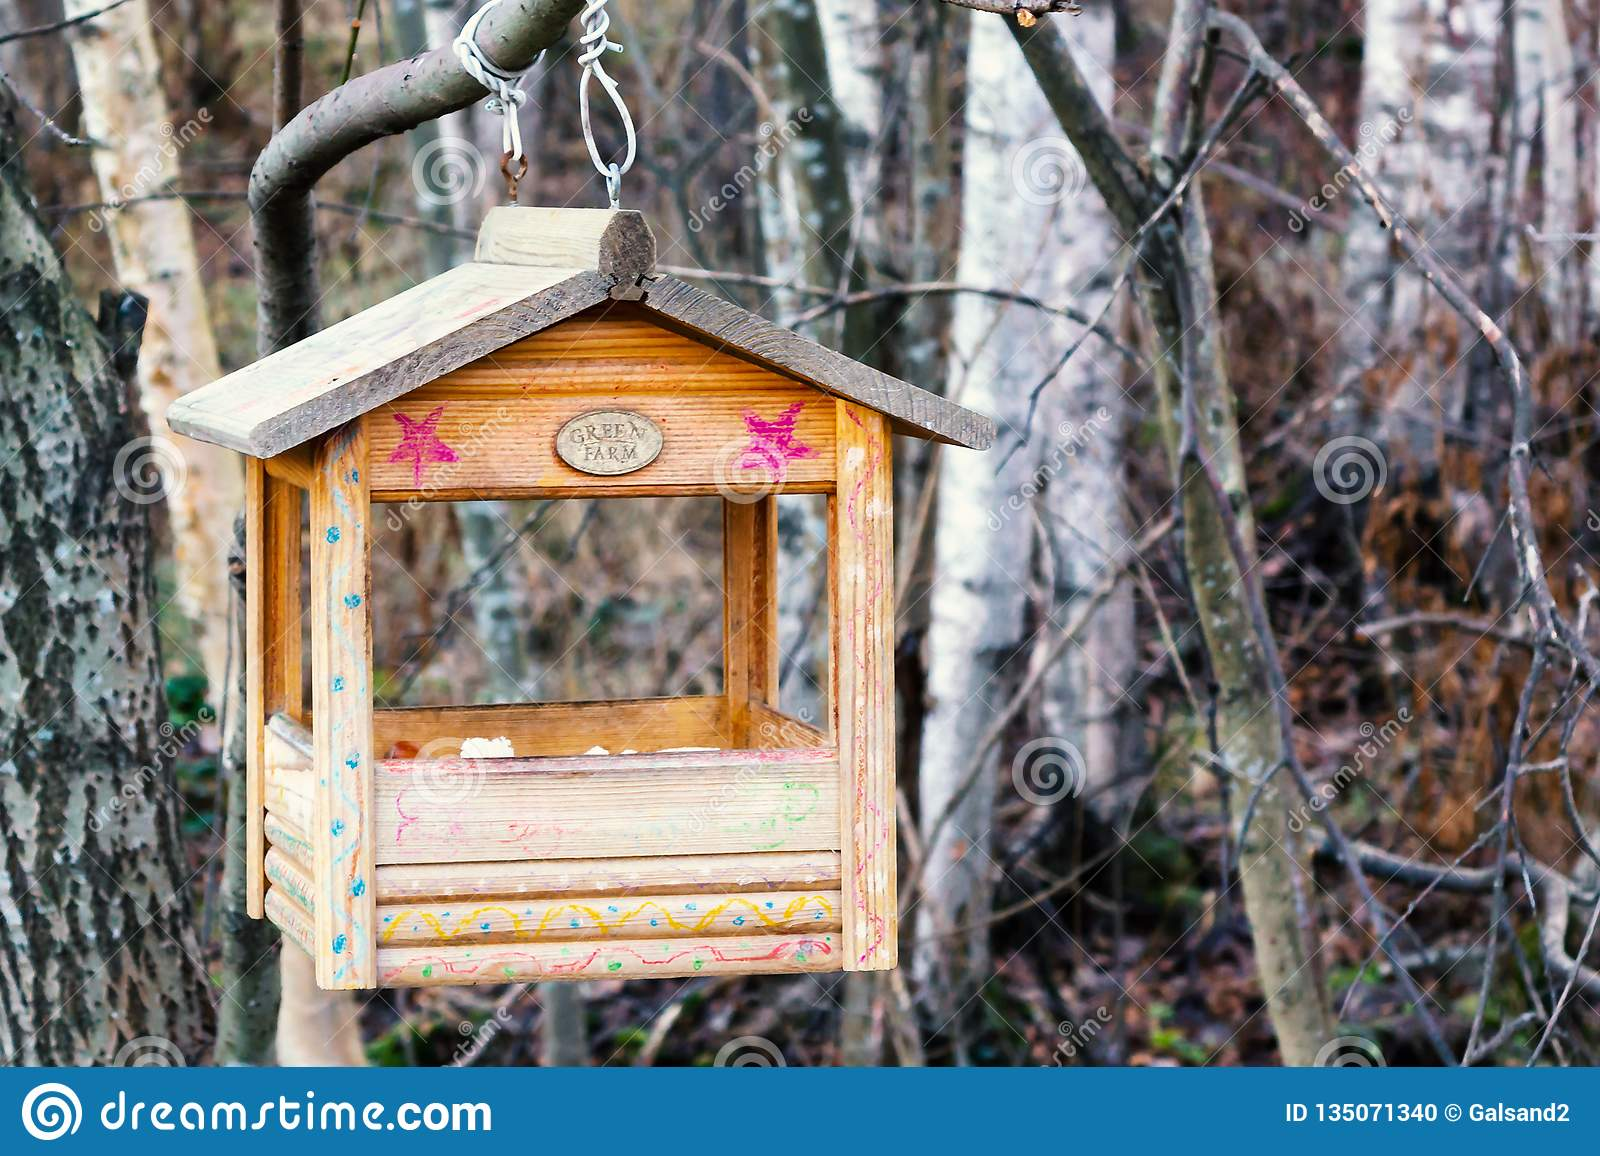 St. Petersburg, Russia - November 22, 2018:: Bird feeder in the shape of a house on a branch in the winter forest